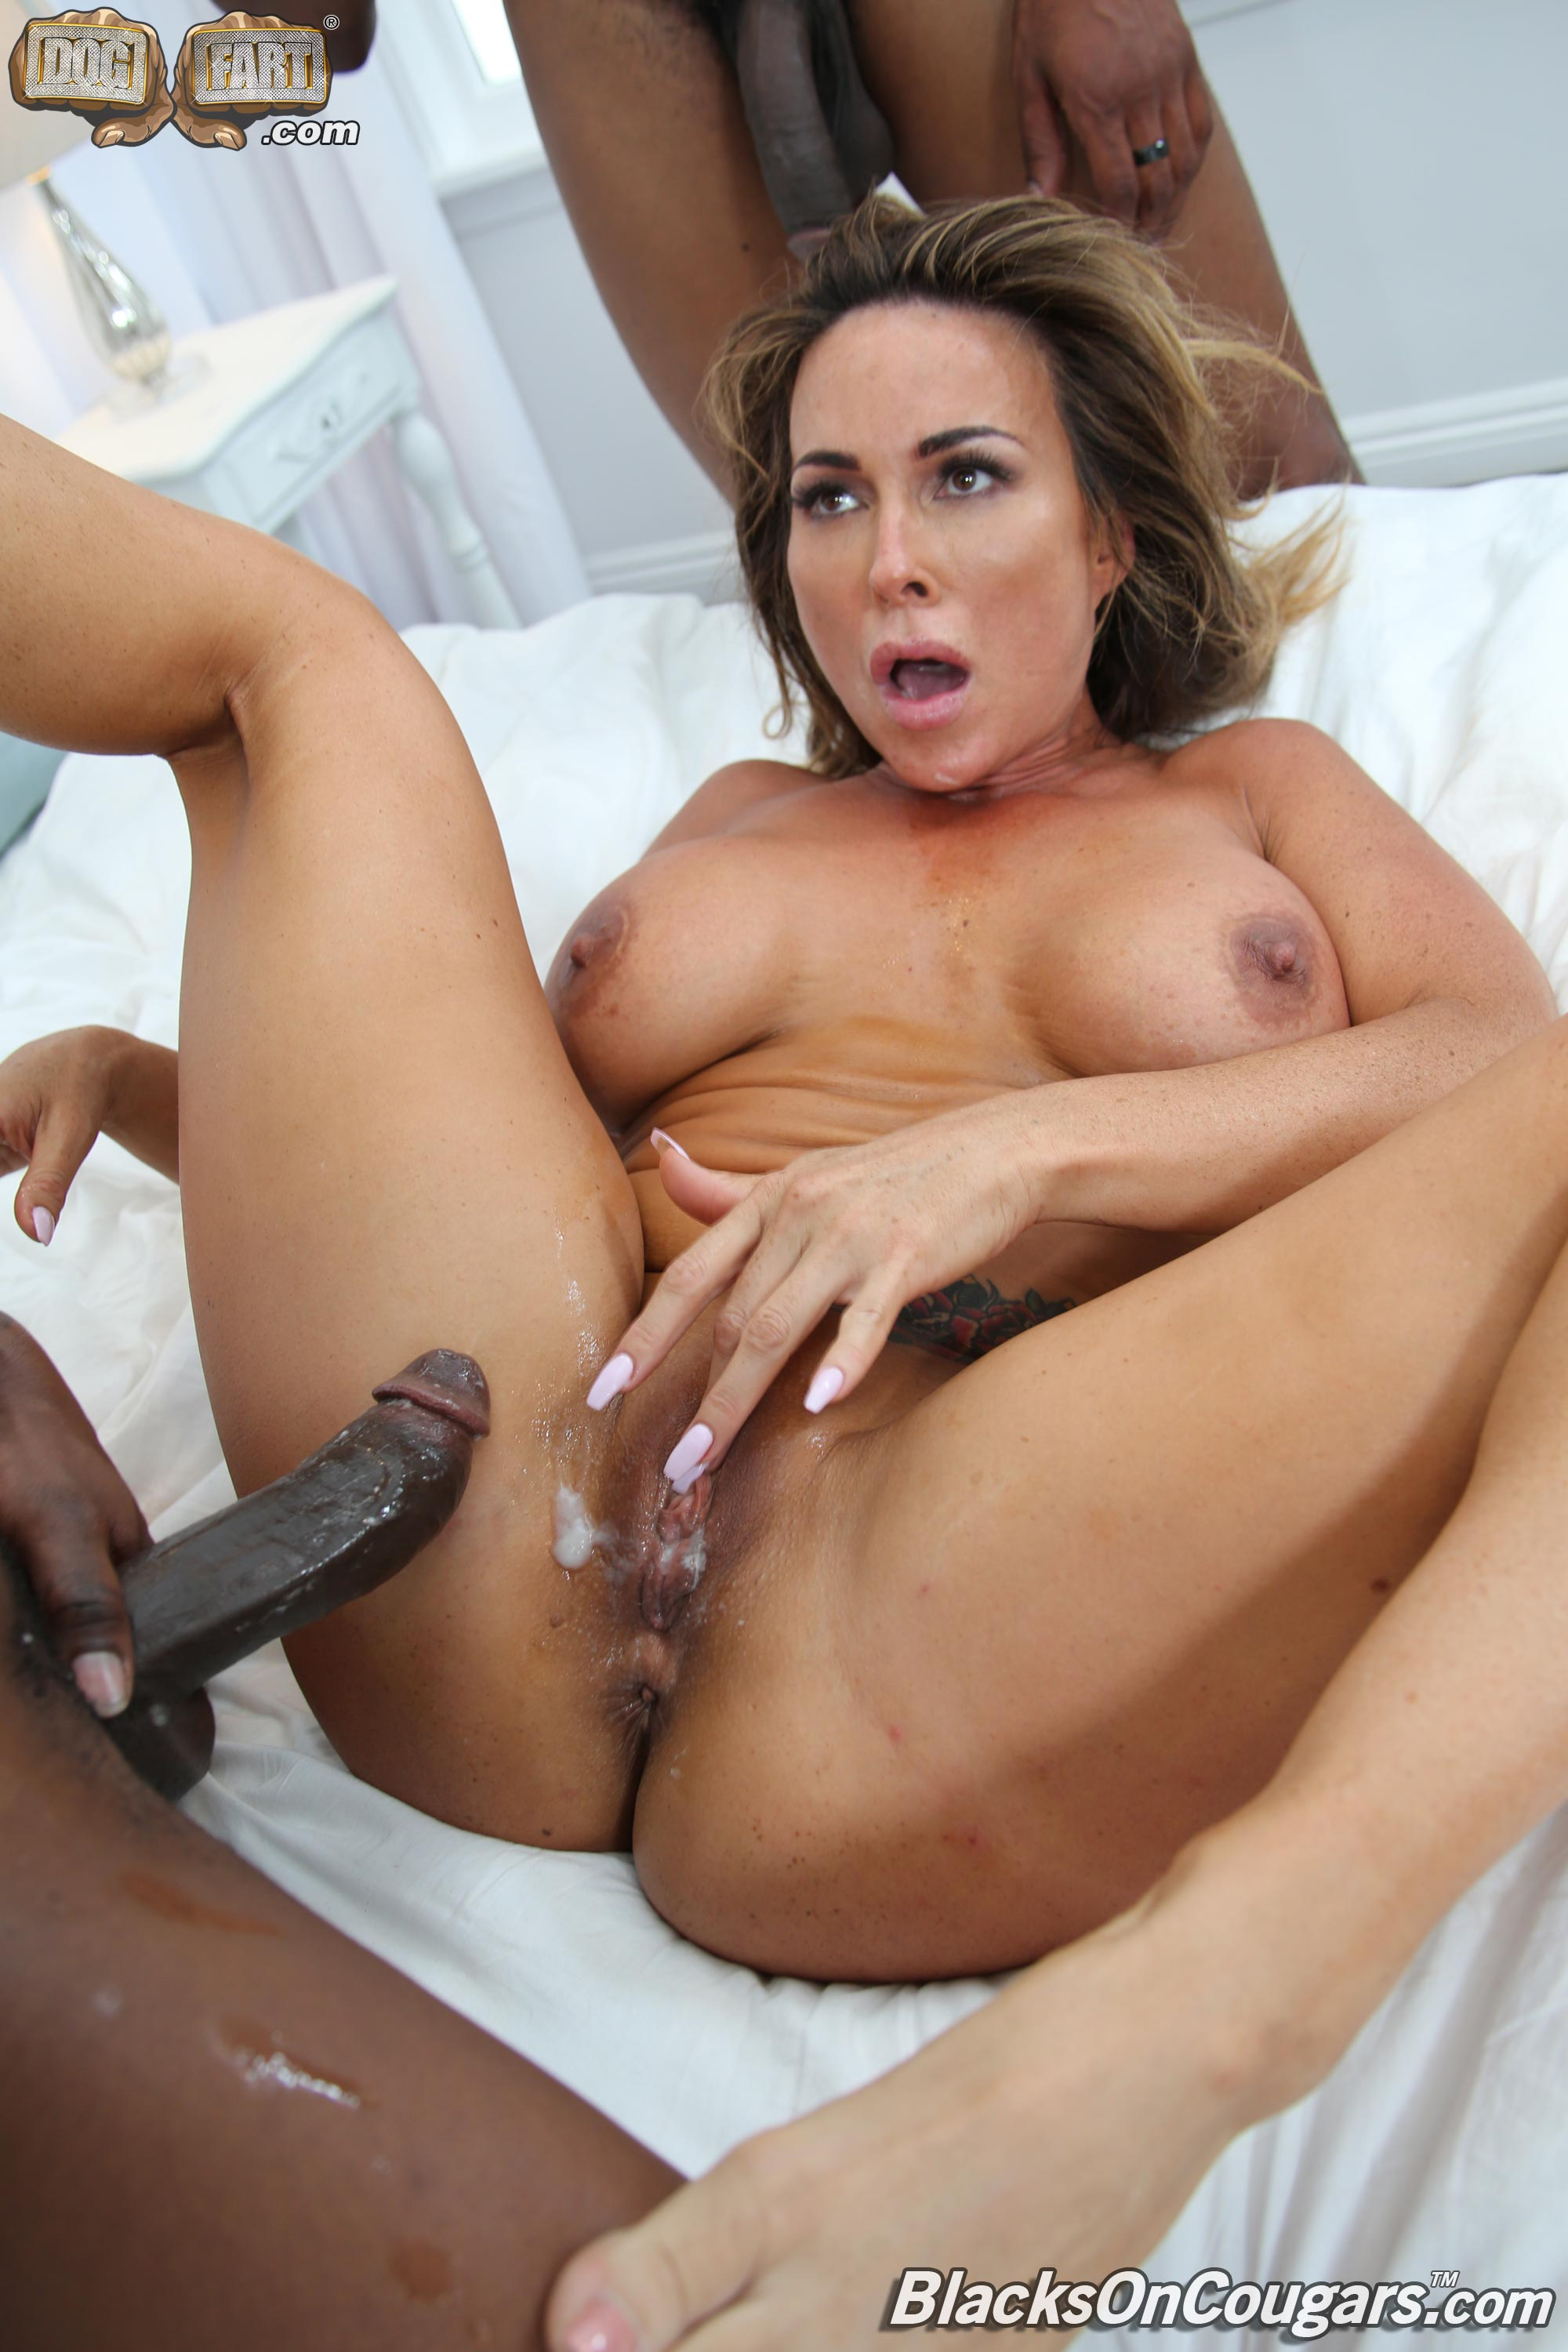 Dogfart 'Aubrey Black - Blacks On Cougars' starring Aubrey Black (photo 28)